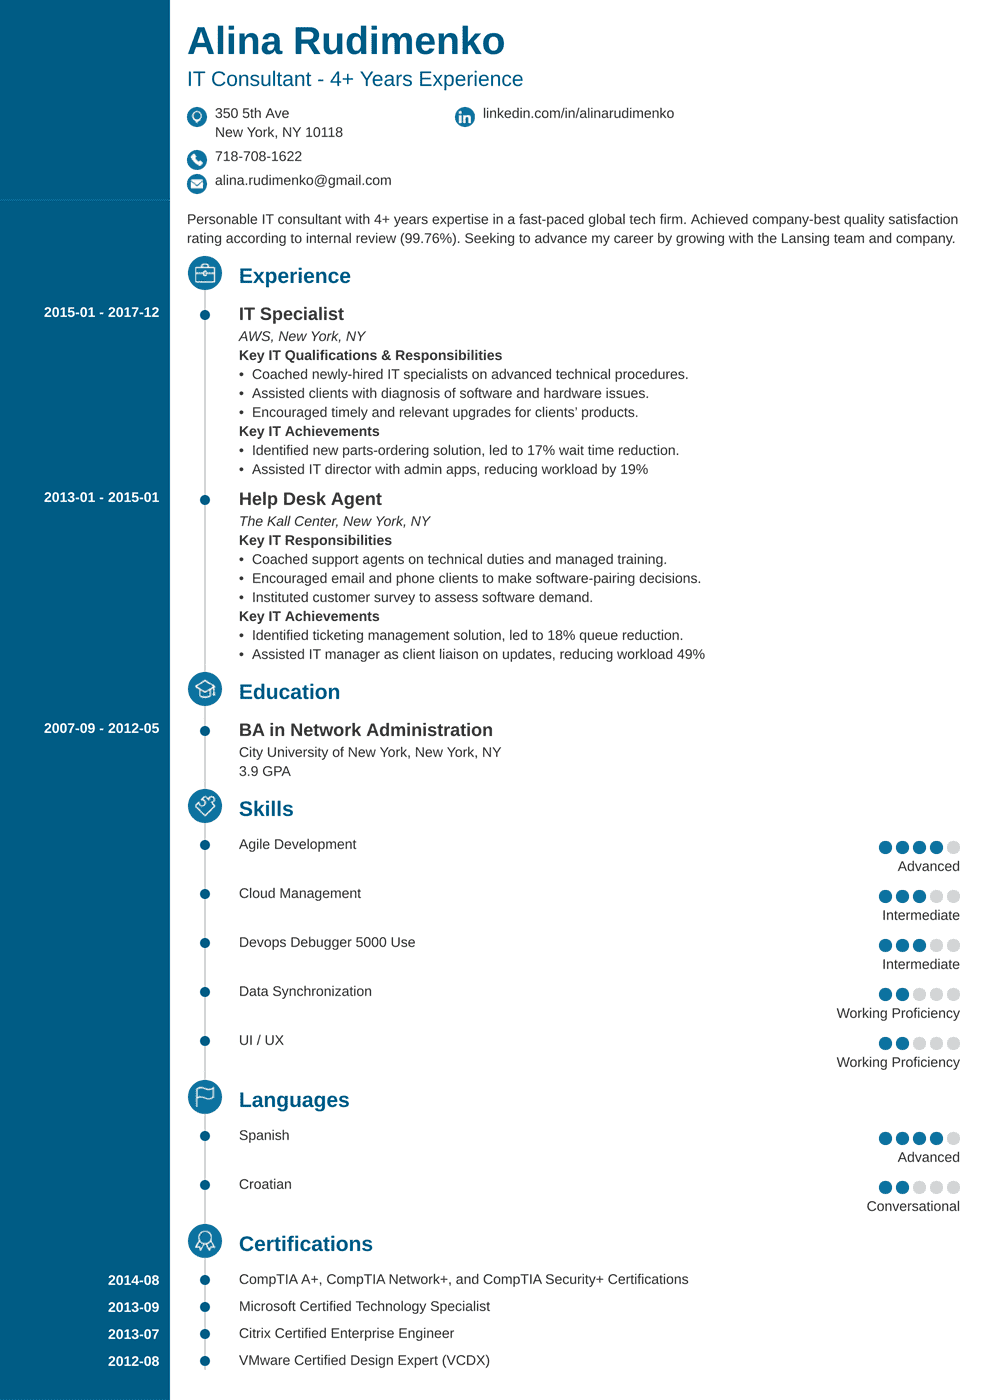 Professional IT Resume (Guide & Examples for 2019)